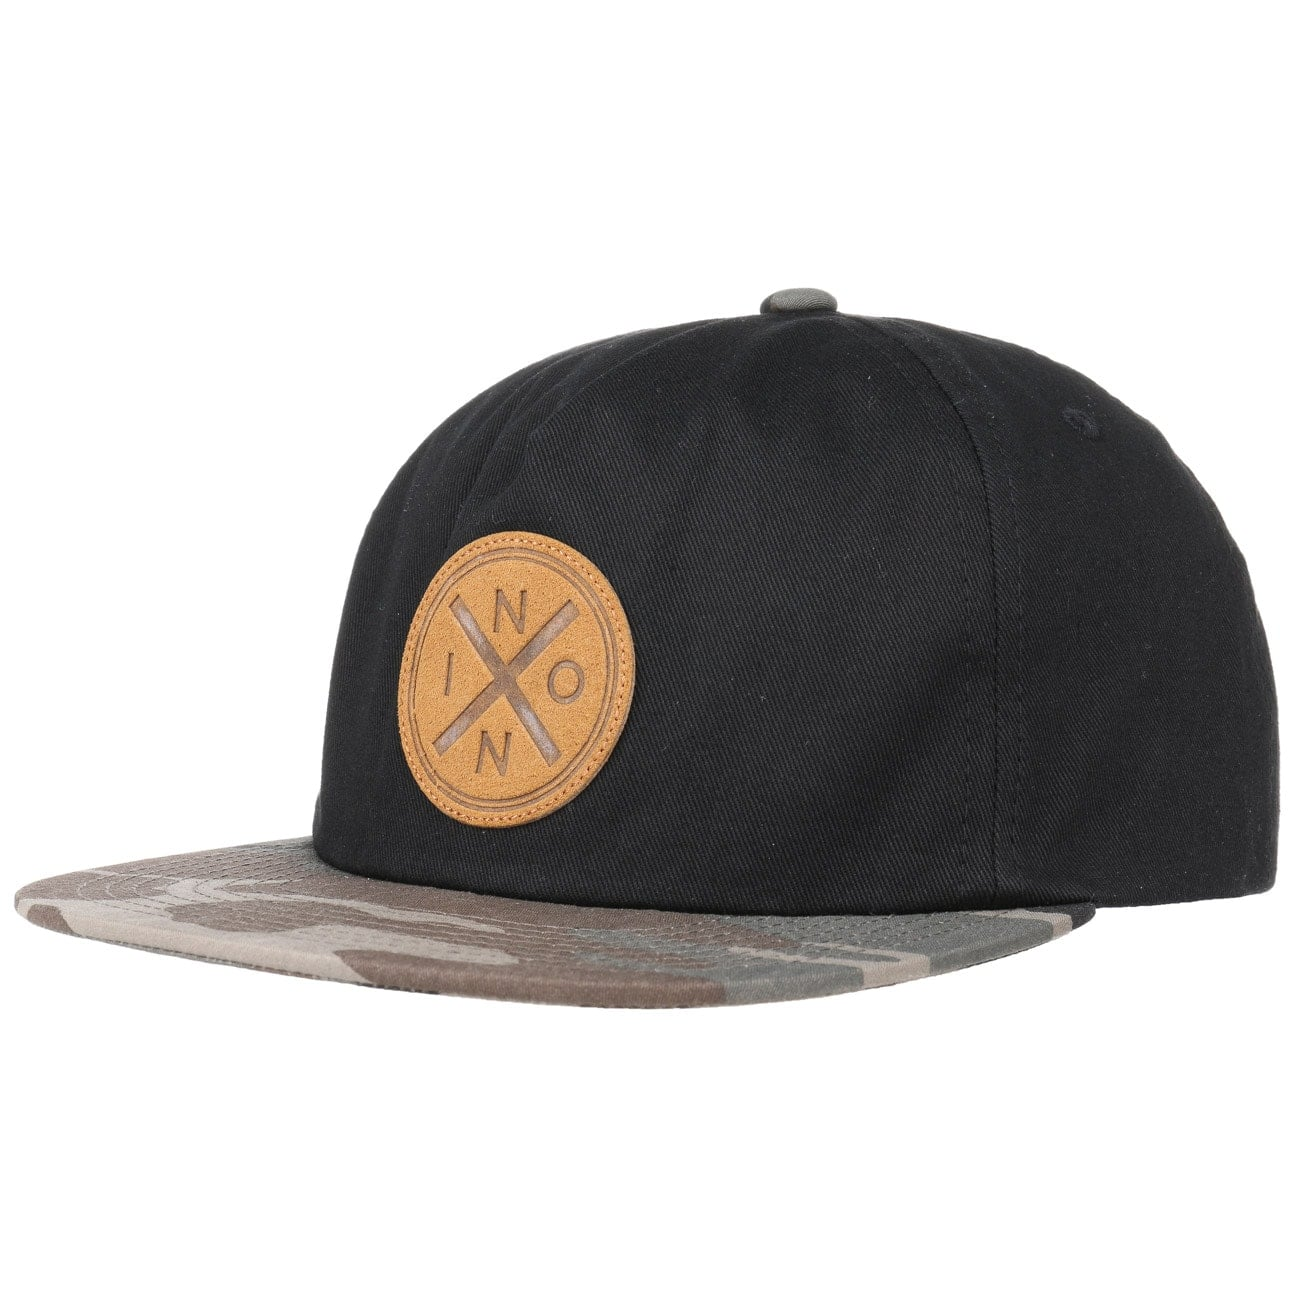 Gorra Beachside Snapback by Nixon  gorra de baseball